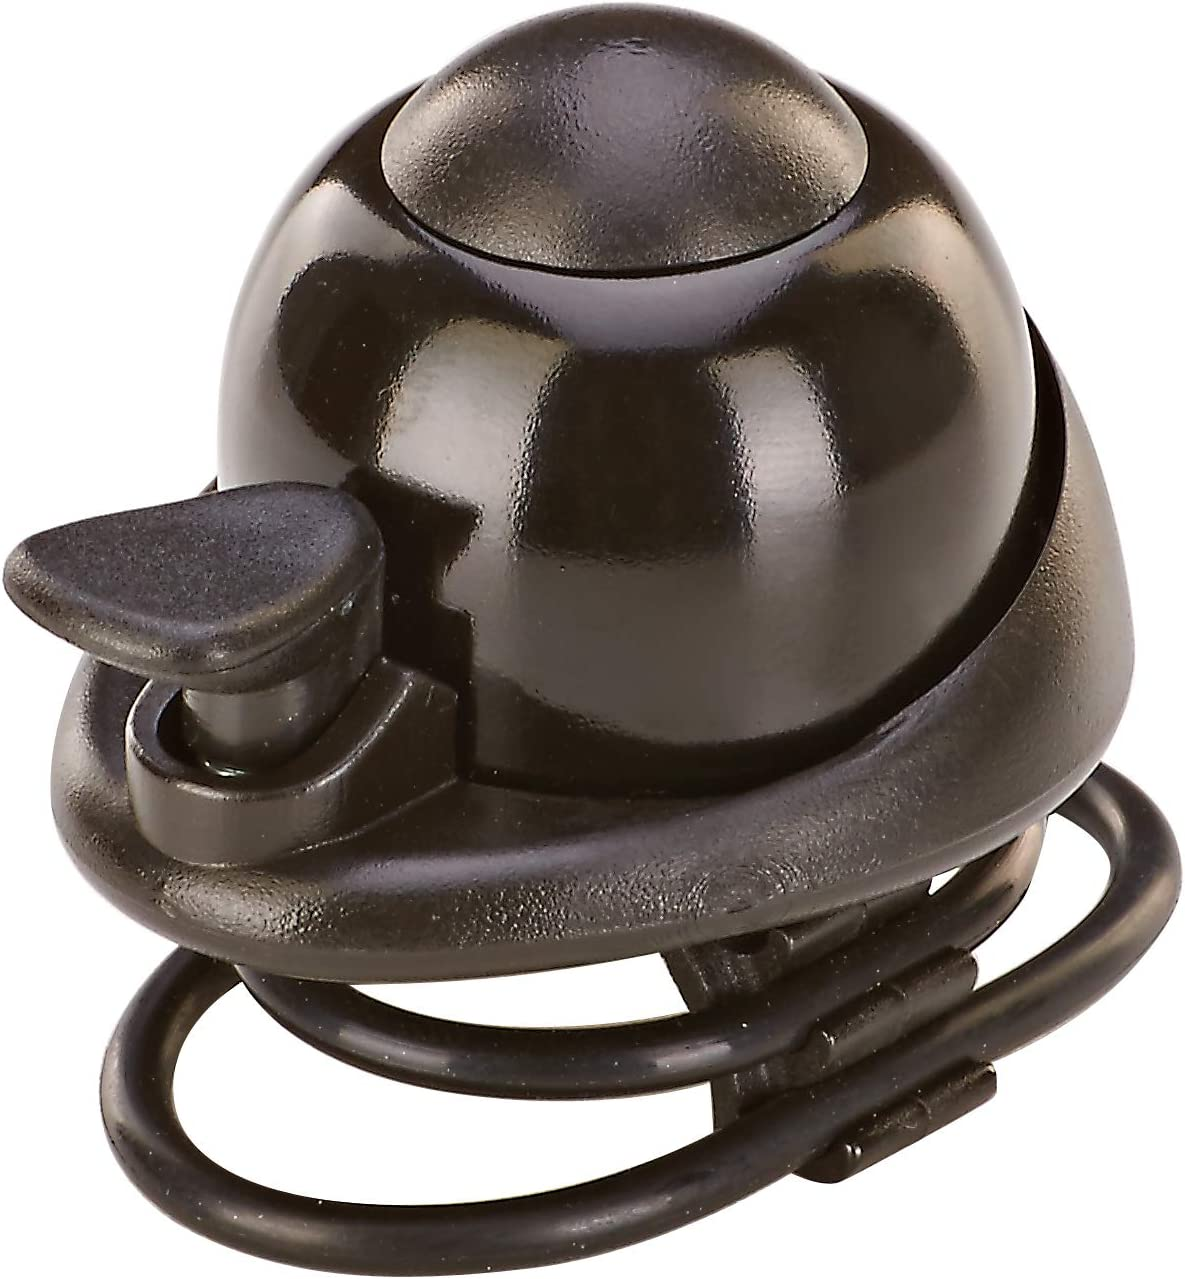 Colour: Black Bicycle Bell Adults Bell with Silicone Mount Fits All Handlebar Diameters Prophete Unisex One Size